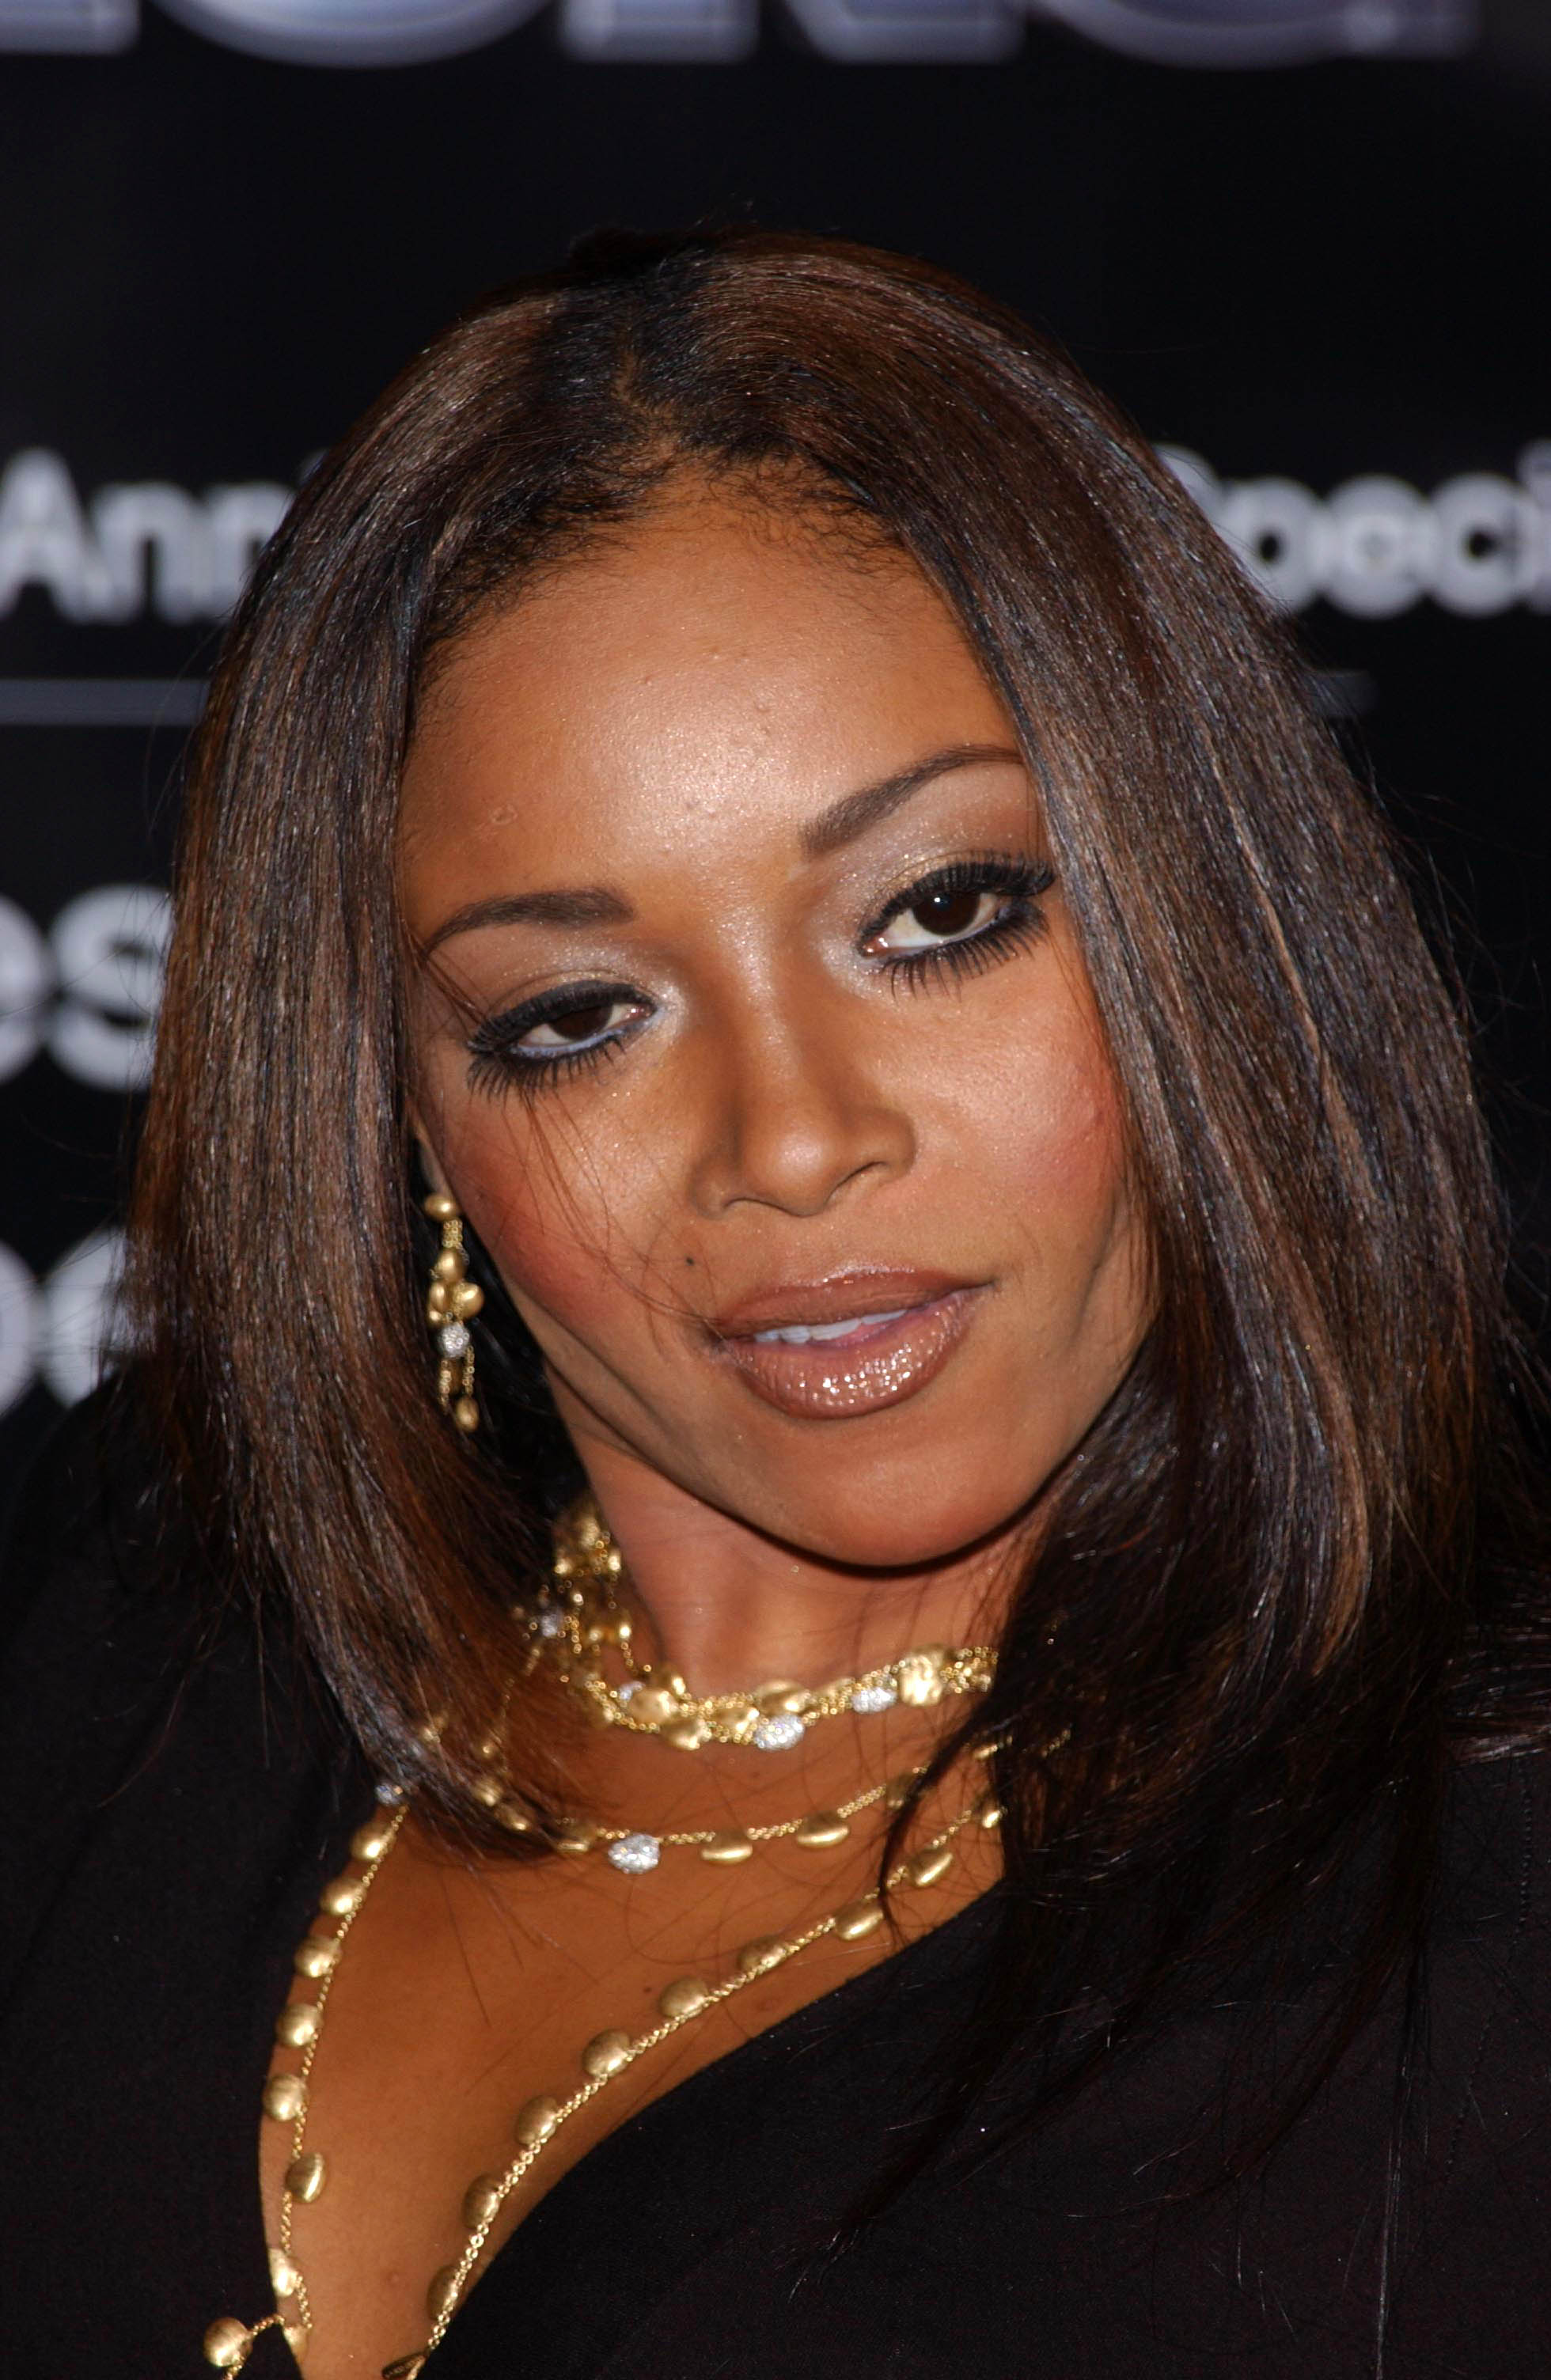 more hot pictures from this picture tamala jones view our nude pics